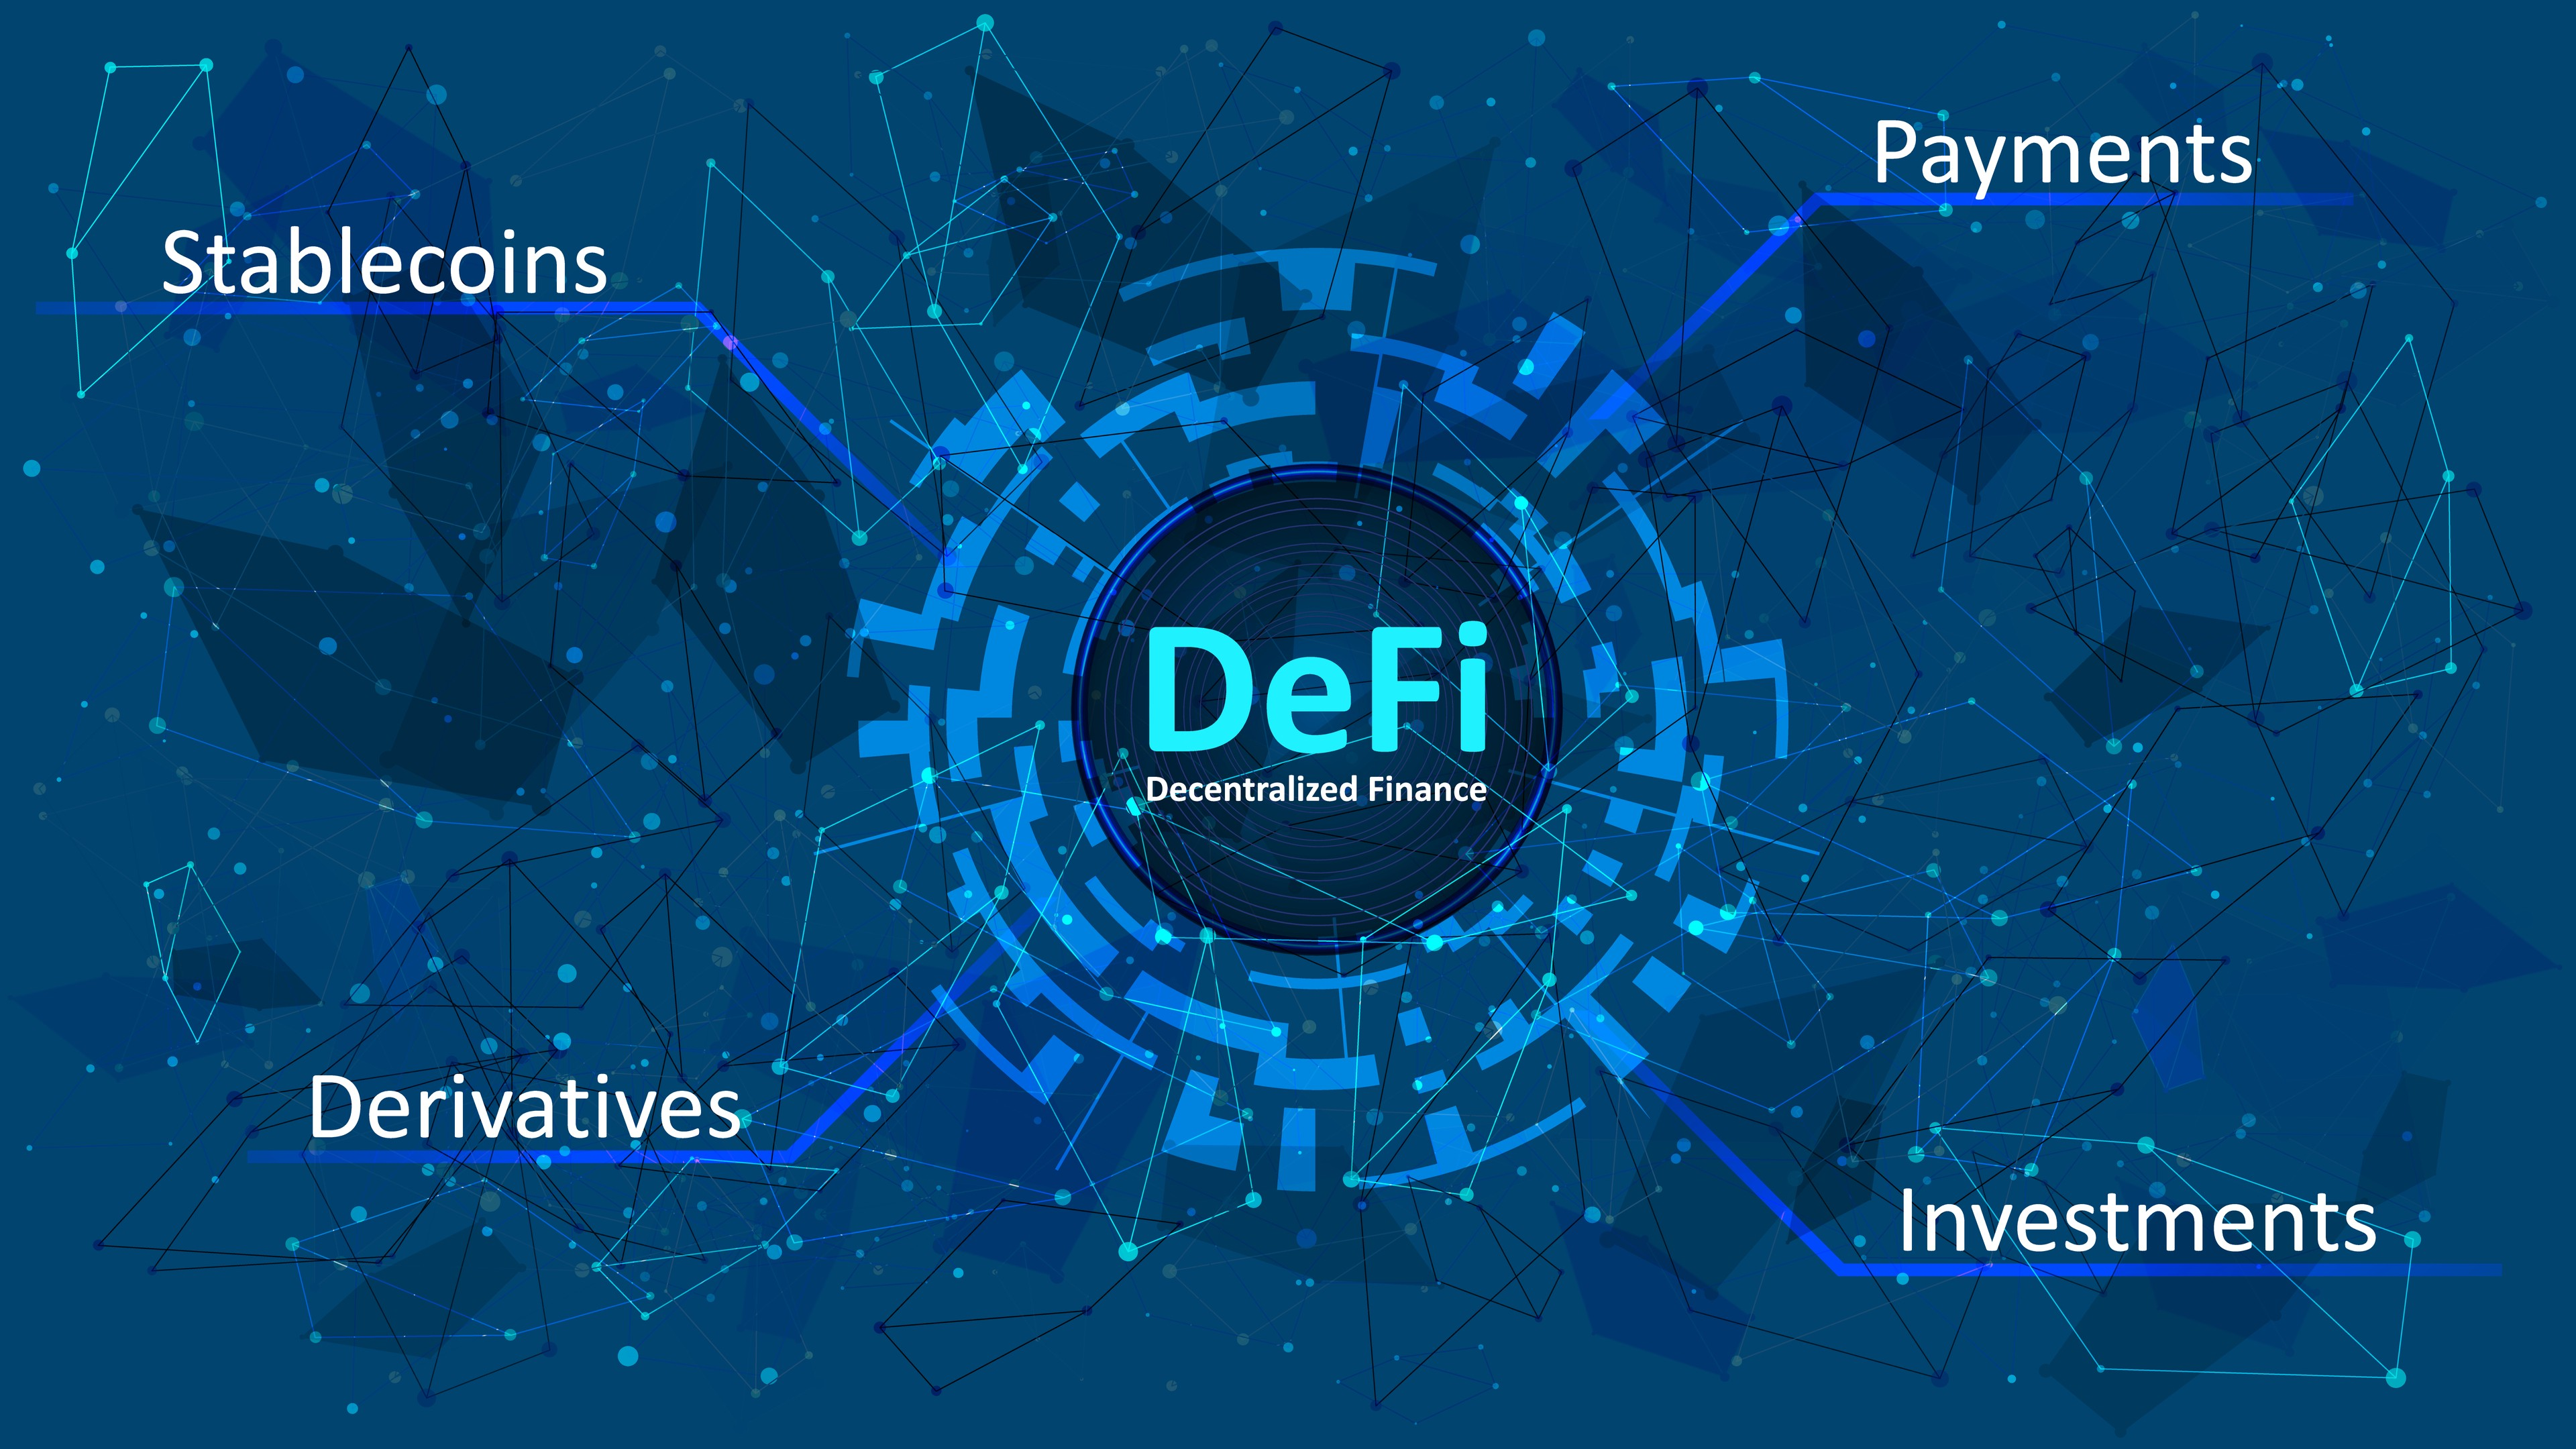 DeFi Smart Contract Developer in Vellore